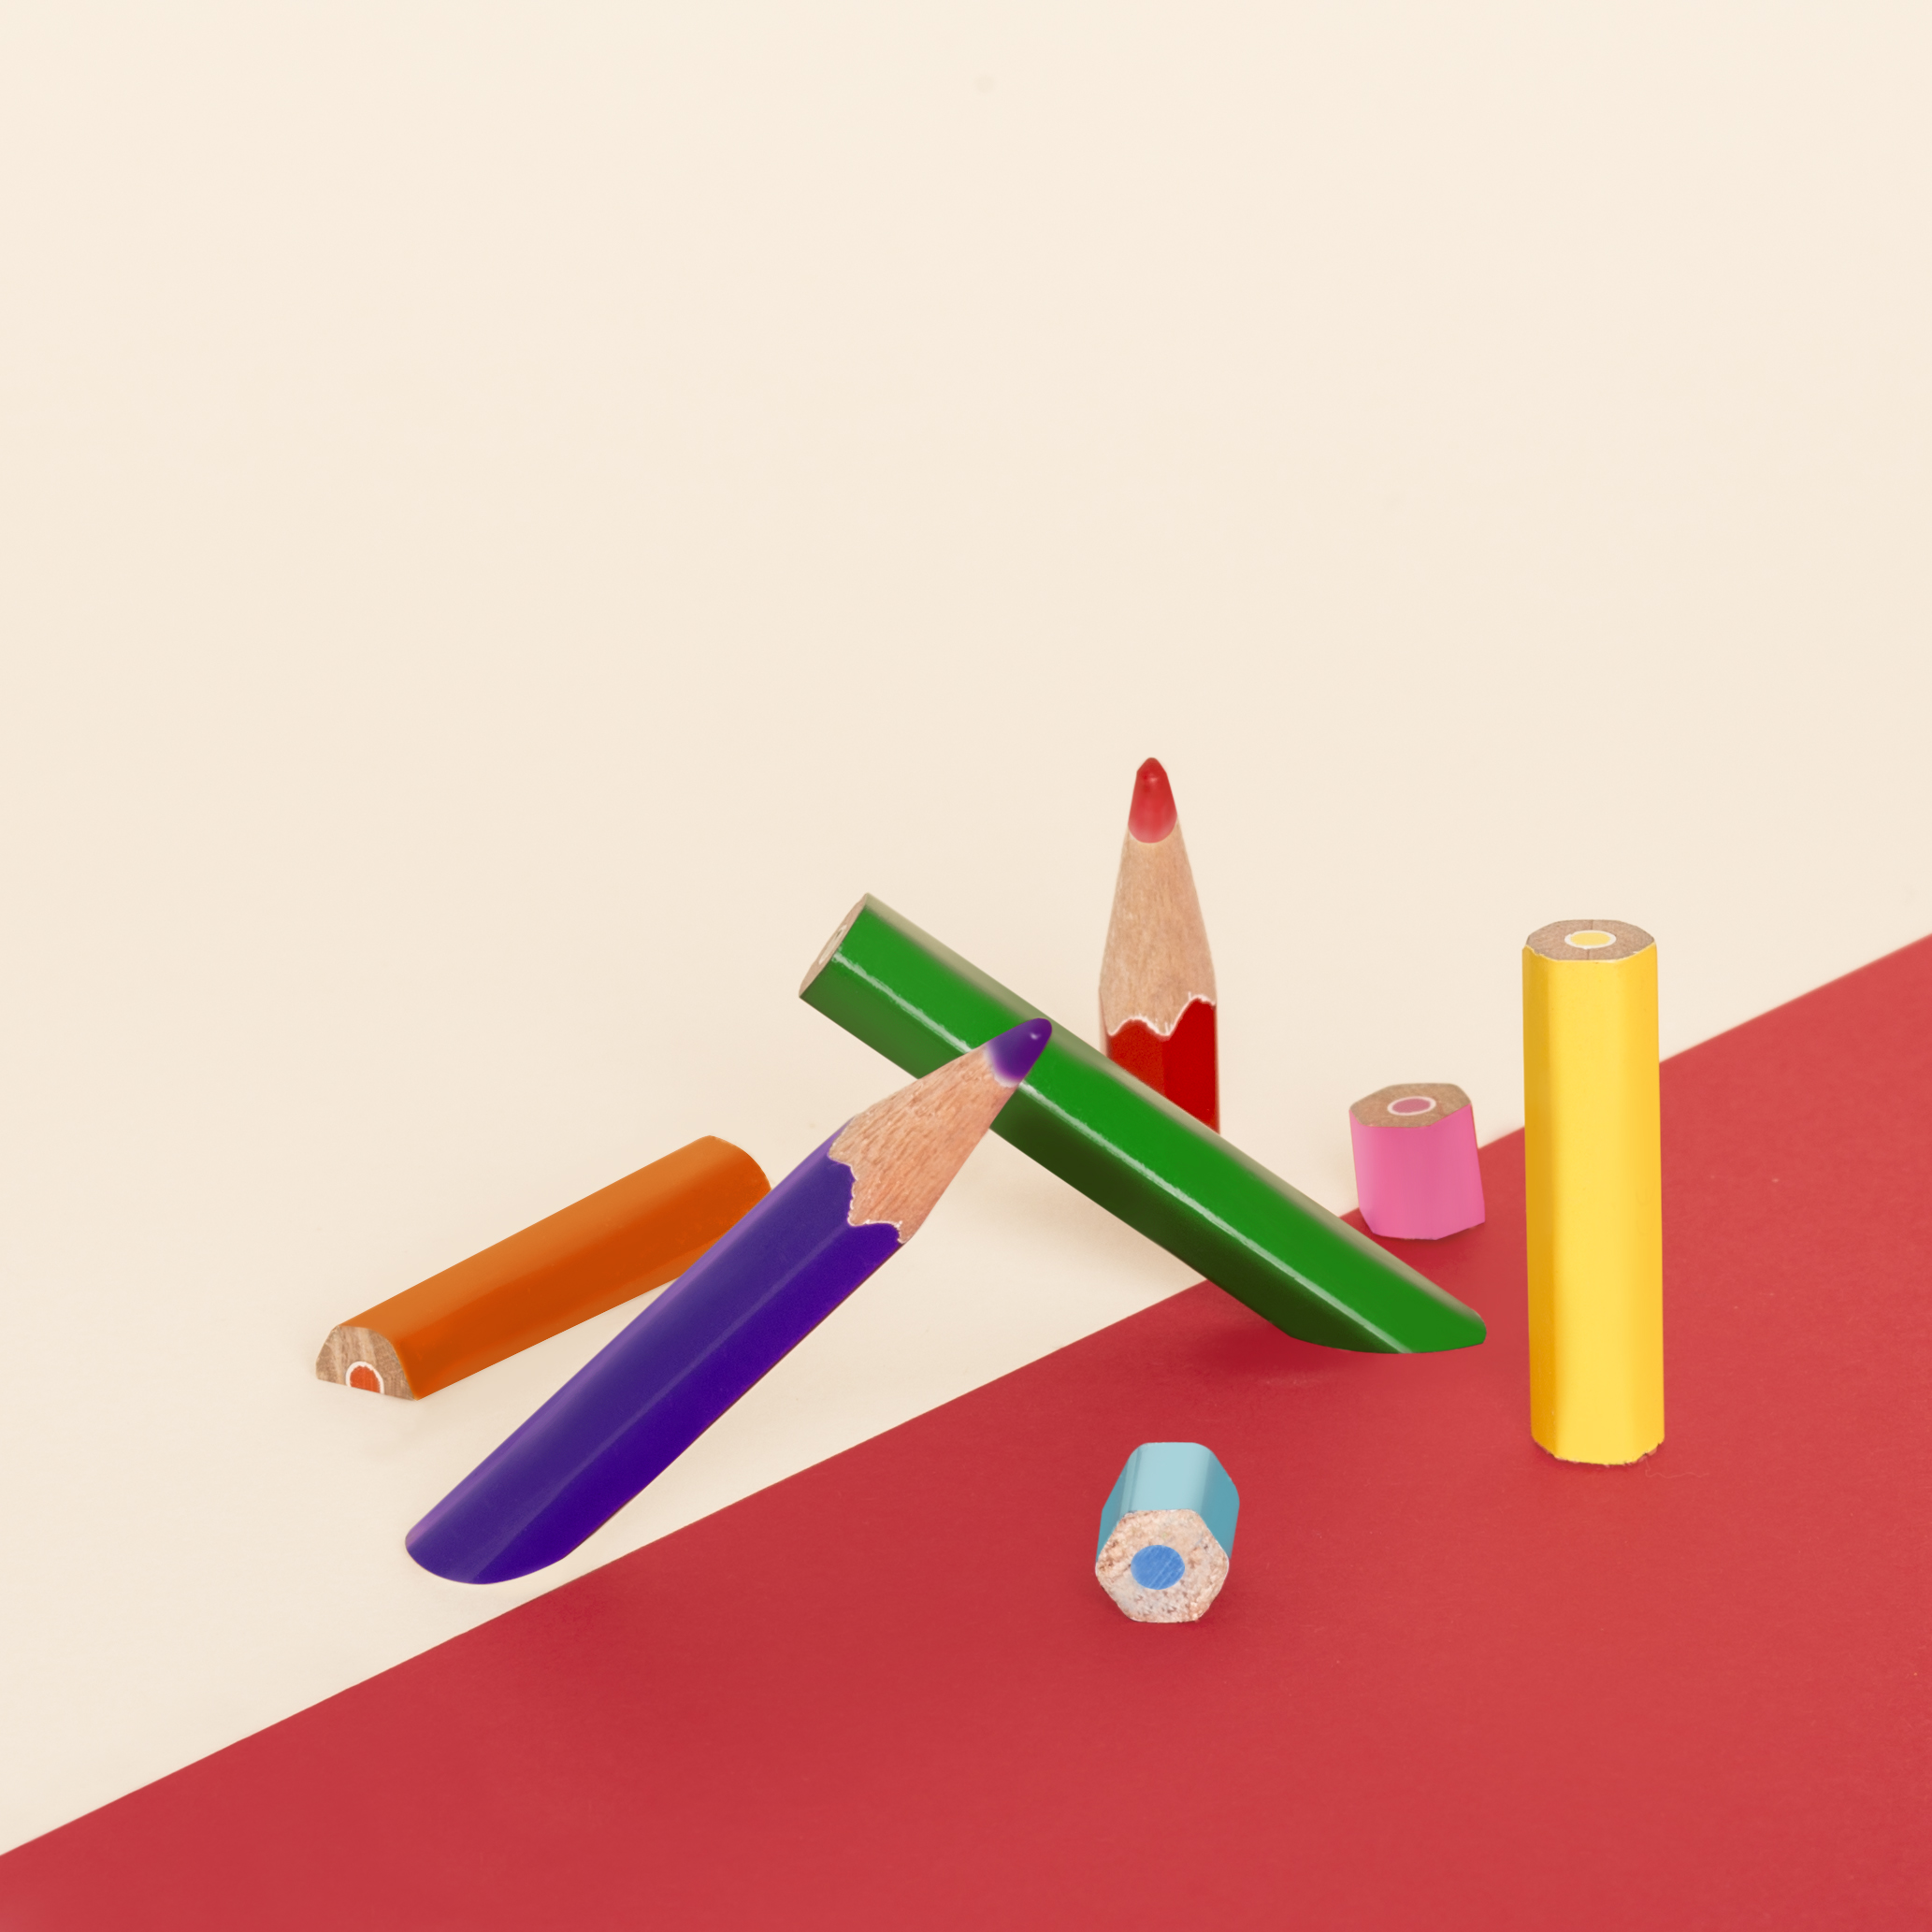 March 31st - Pencil Day